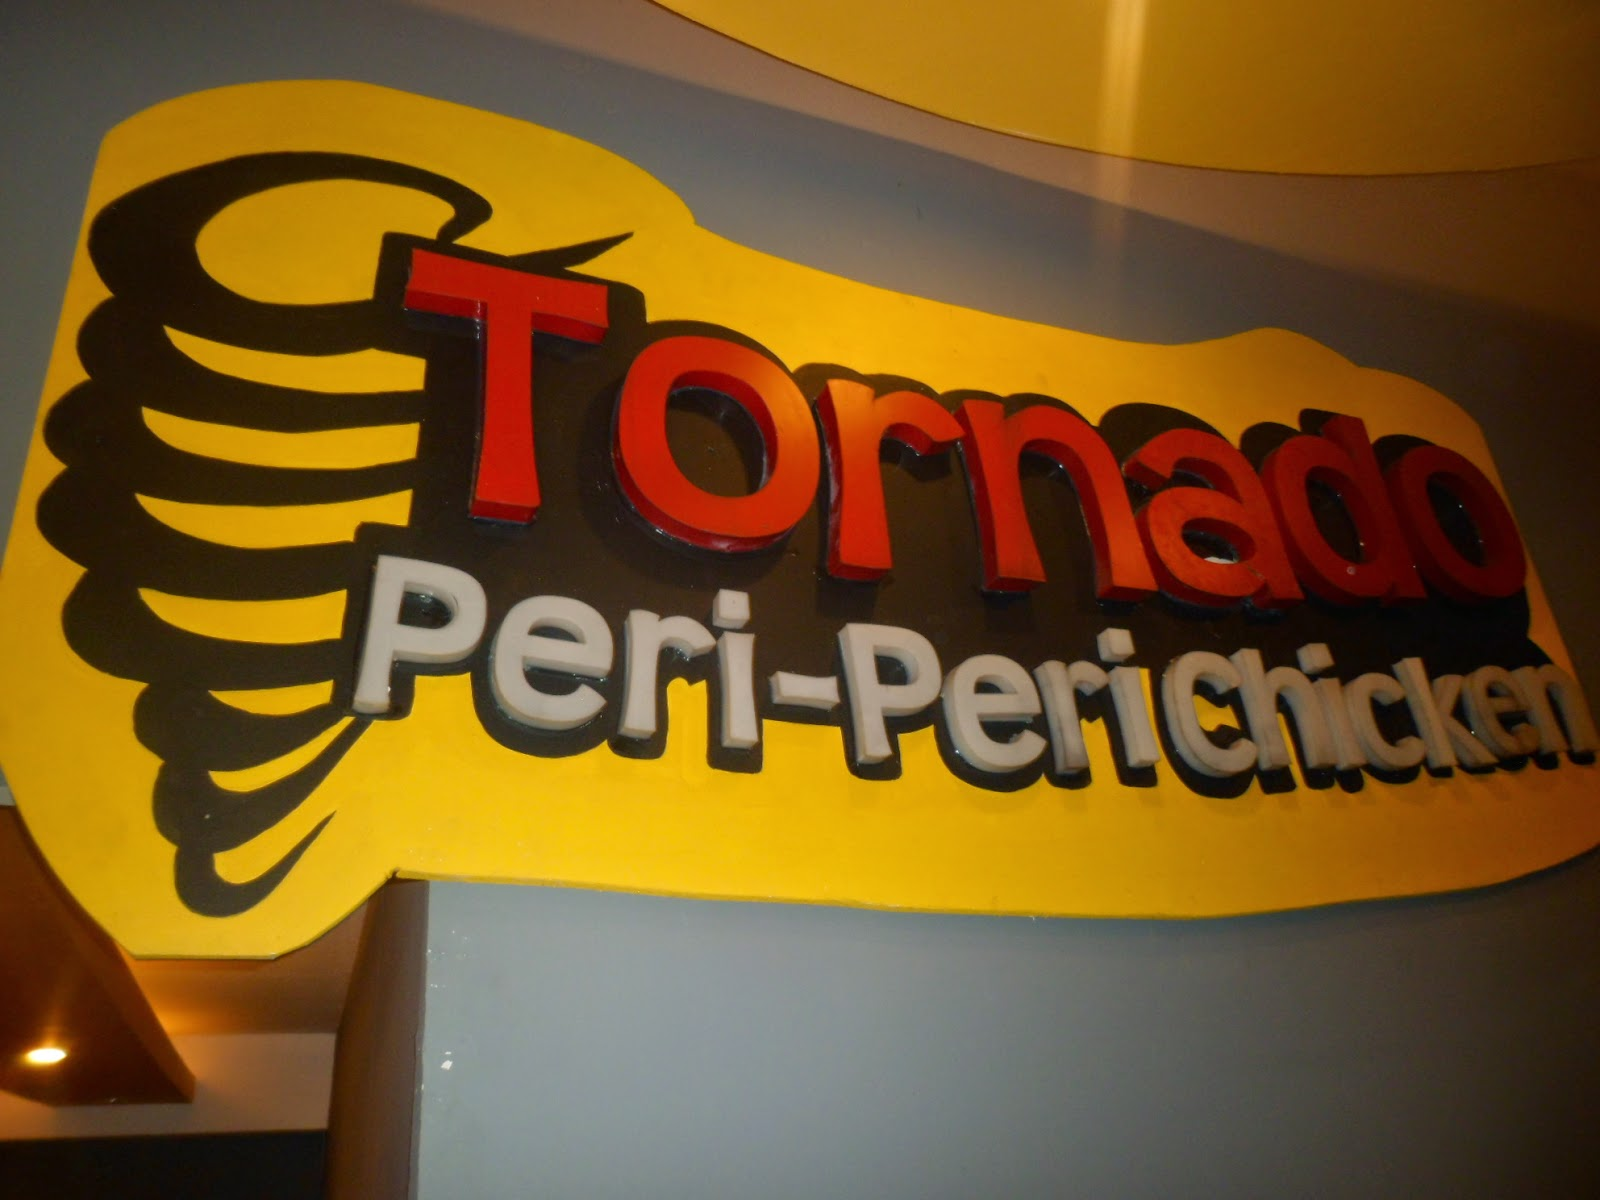 Turn Your World Around With Tornado Peri-peri Chicken